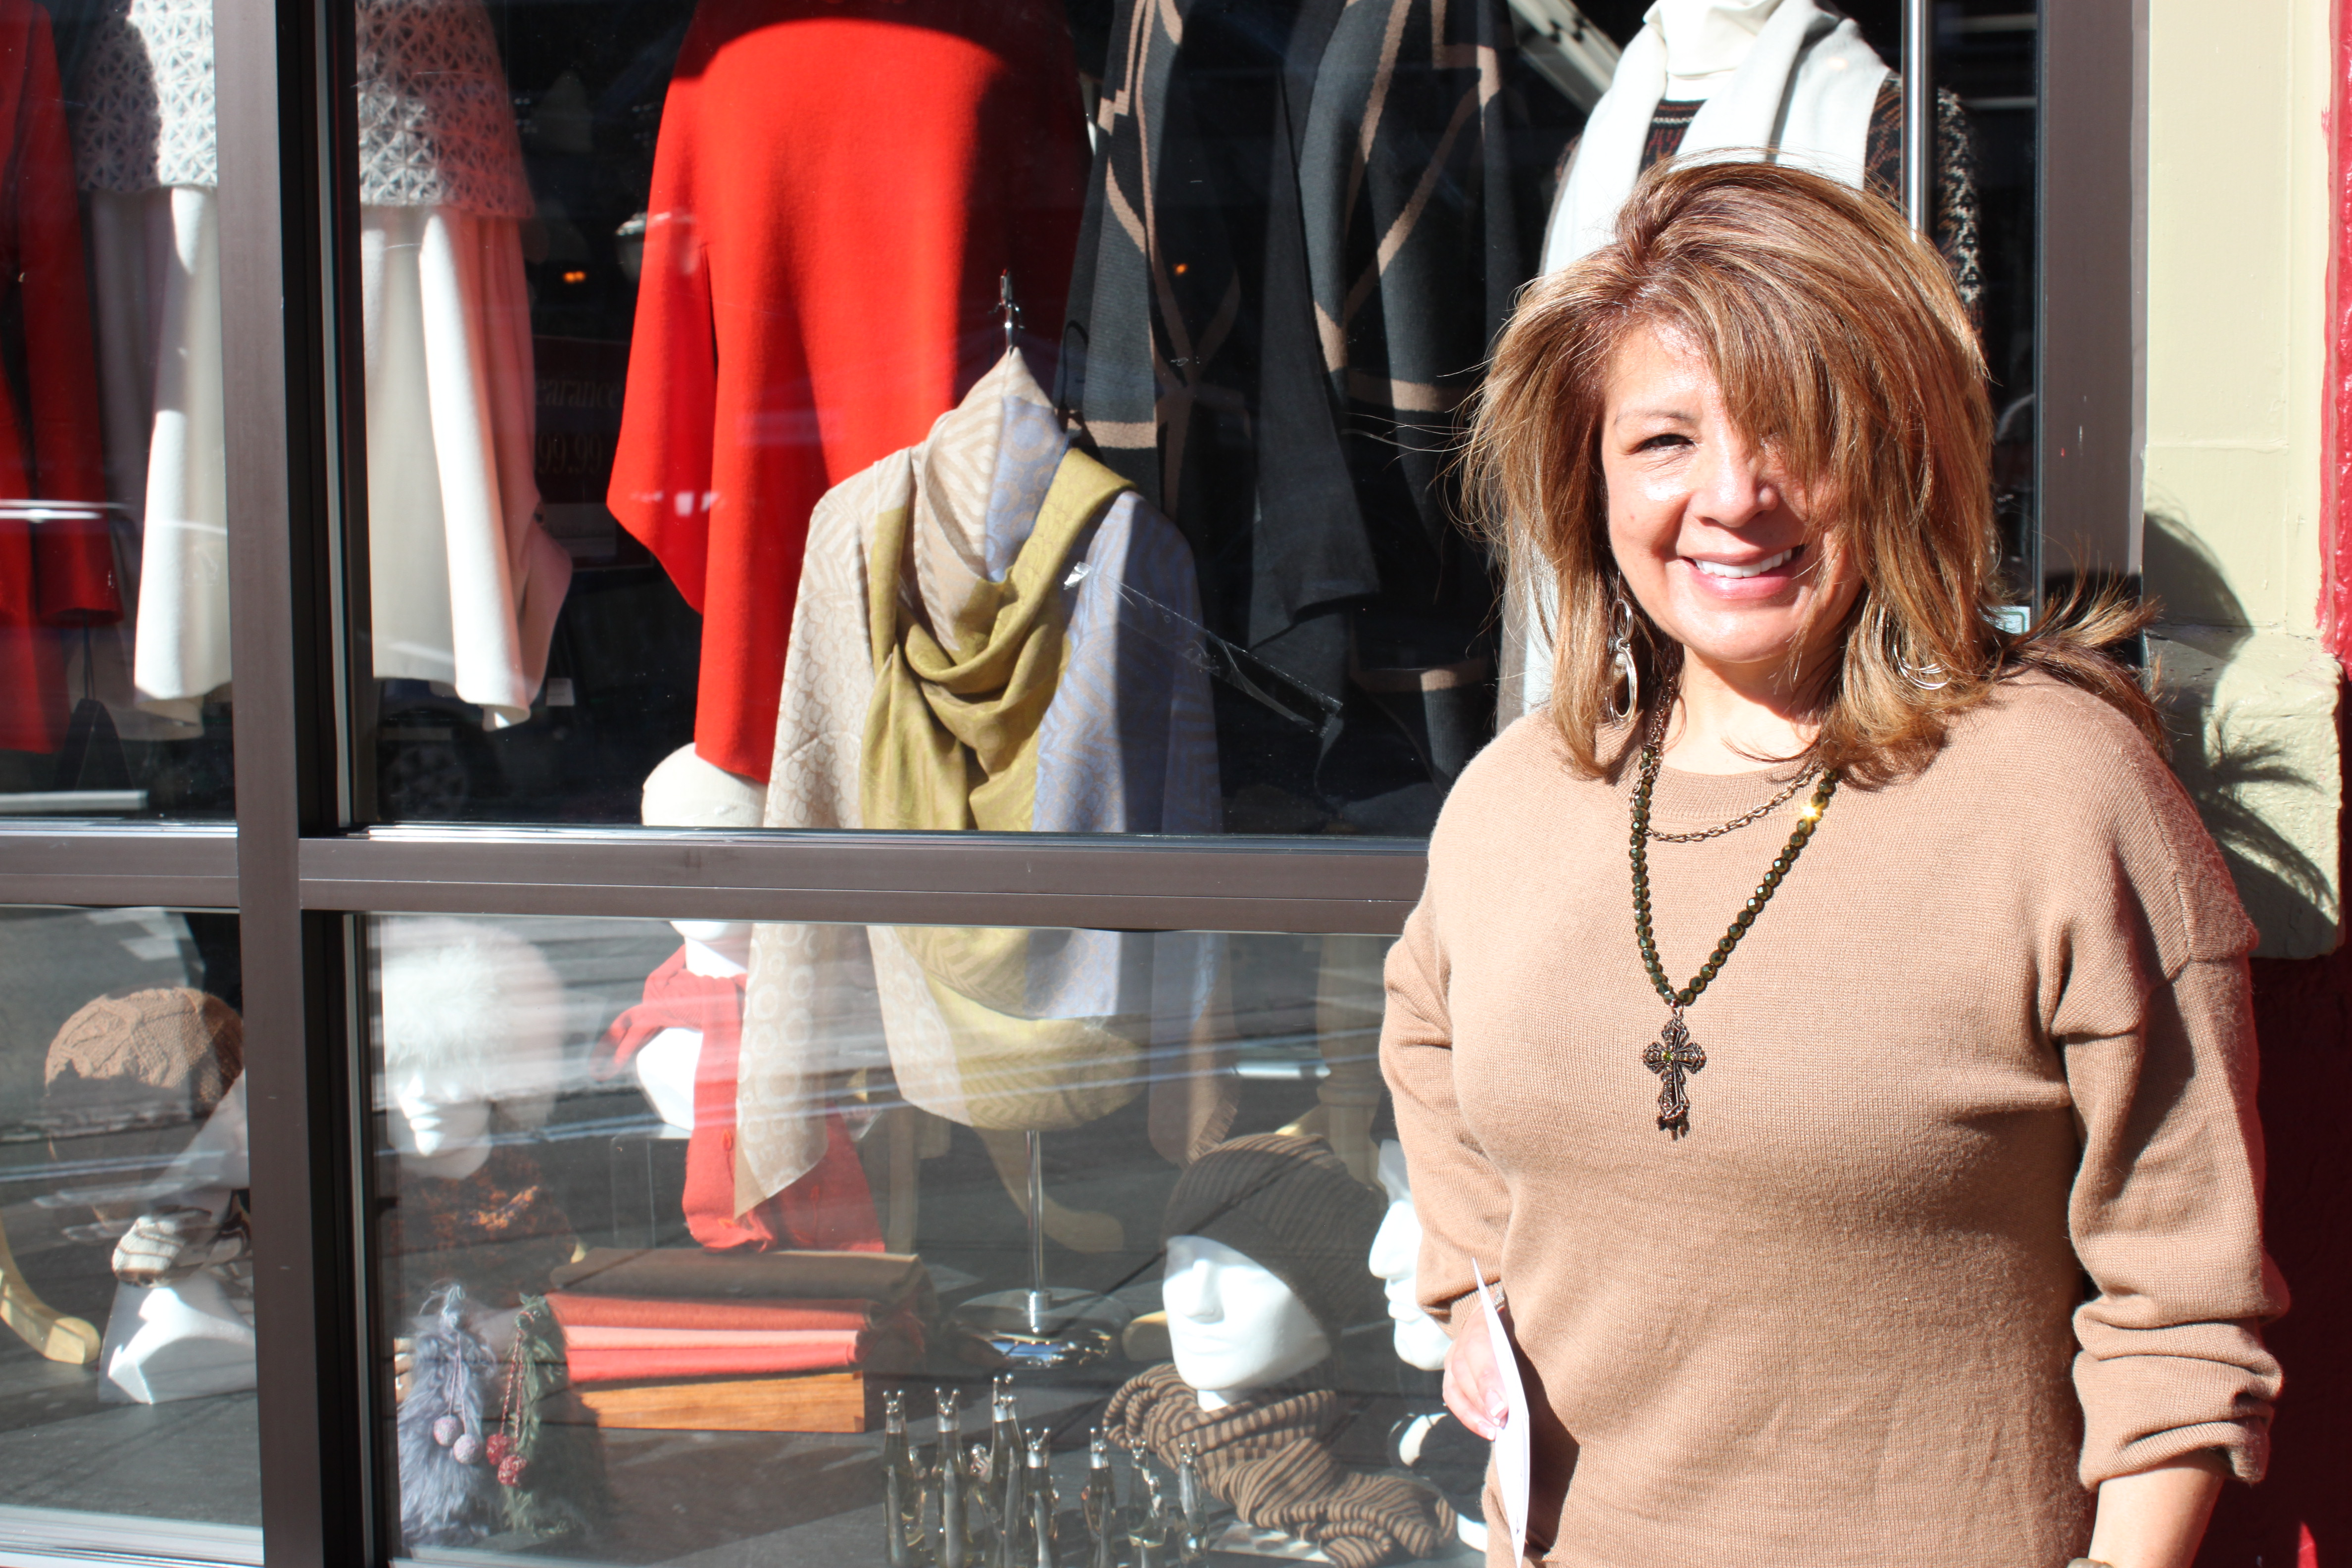 """Alpaca International owner Zia Boccaccio says, unlike previous winters, she'll keep her store window display """"nice, bright and lively."""" (Photo by Lisa Phu/KTOO)"""